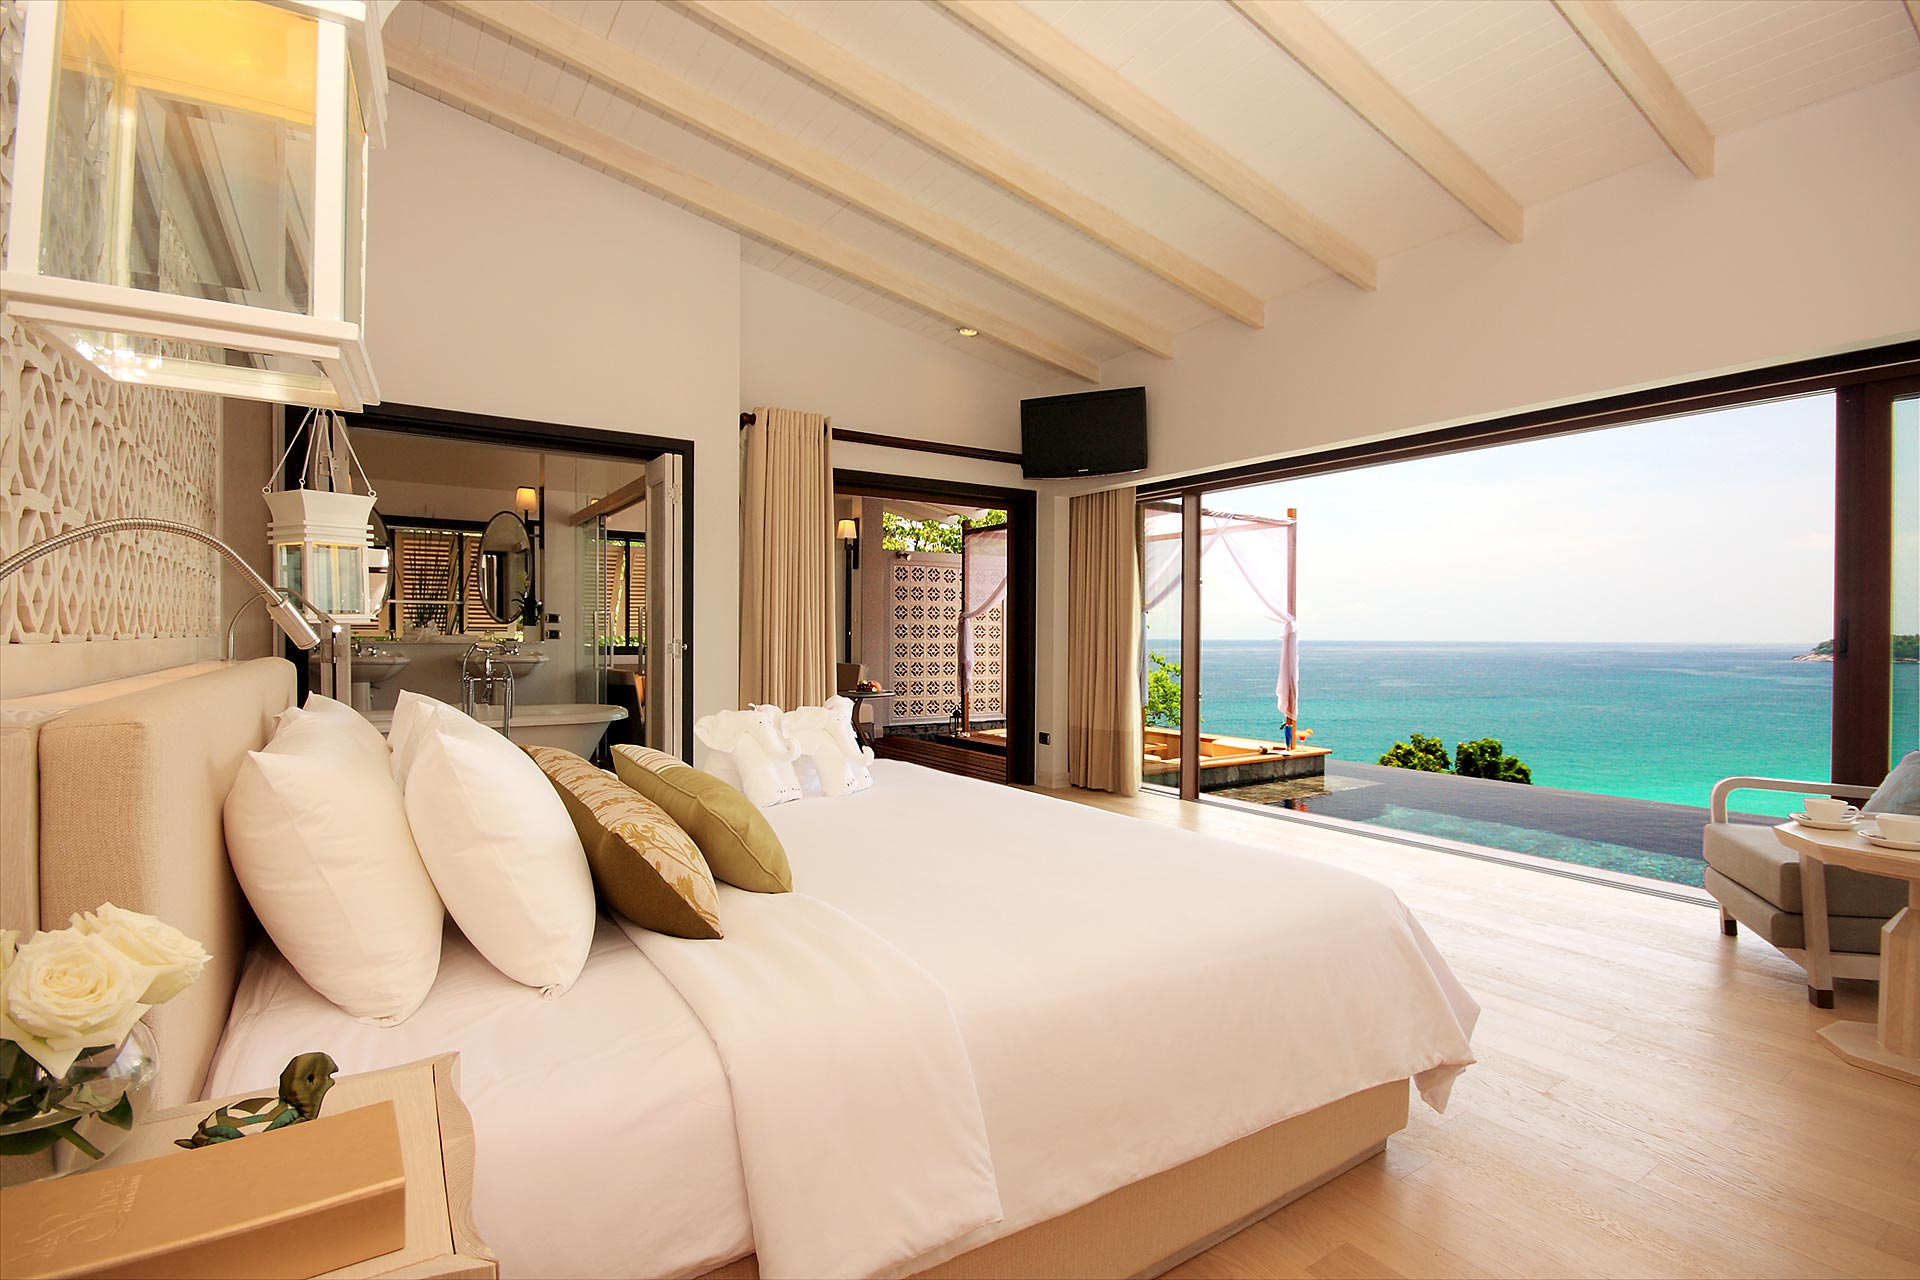 Hotel Room With Floor To Ceiling Windows And Ocean View